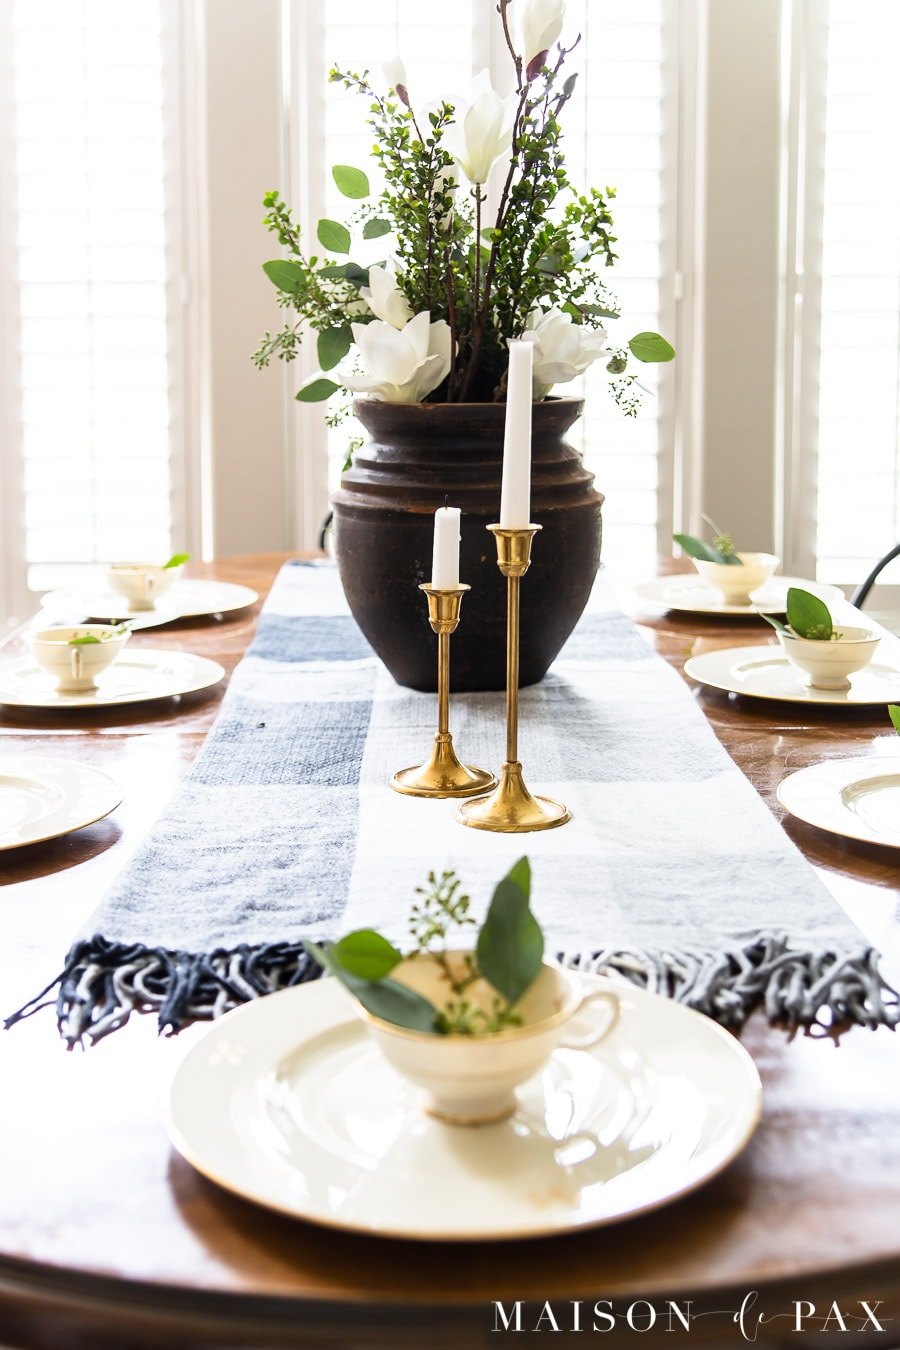 gray black and white plaid table runner with gold dishes | Maison de Pax